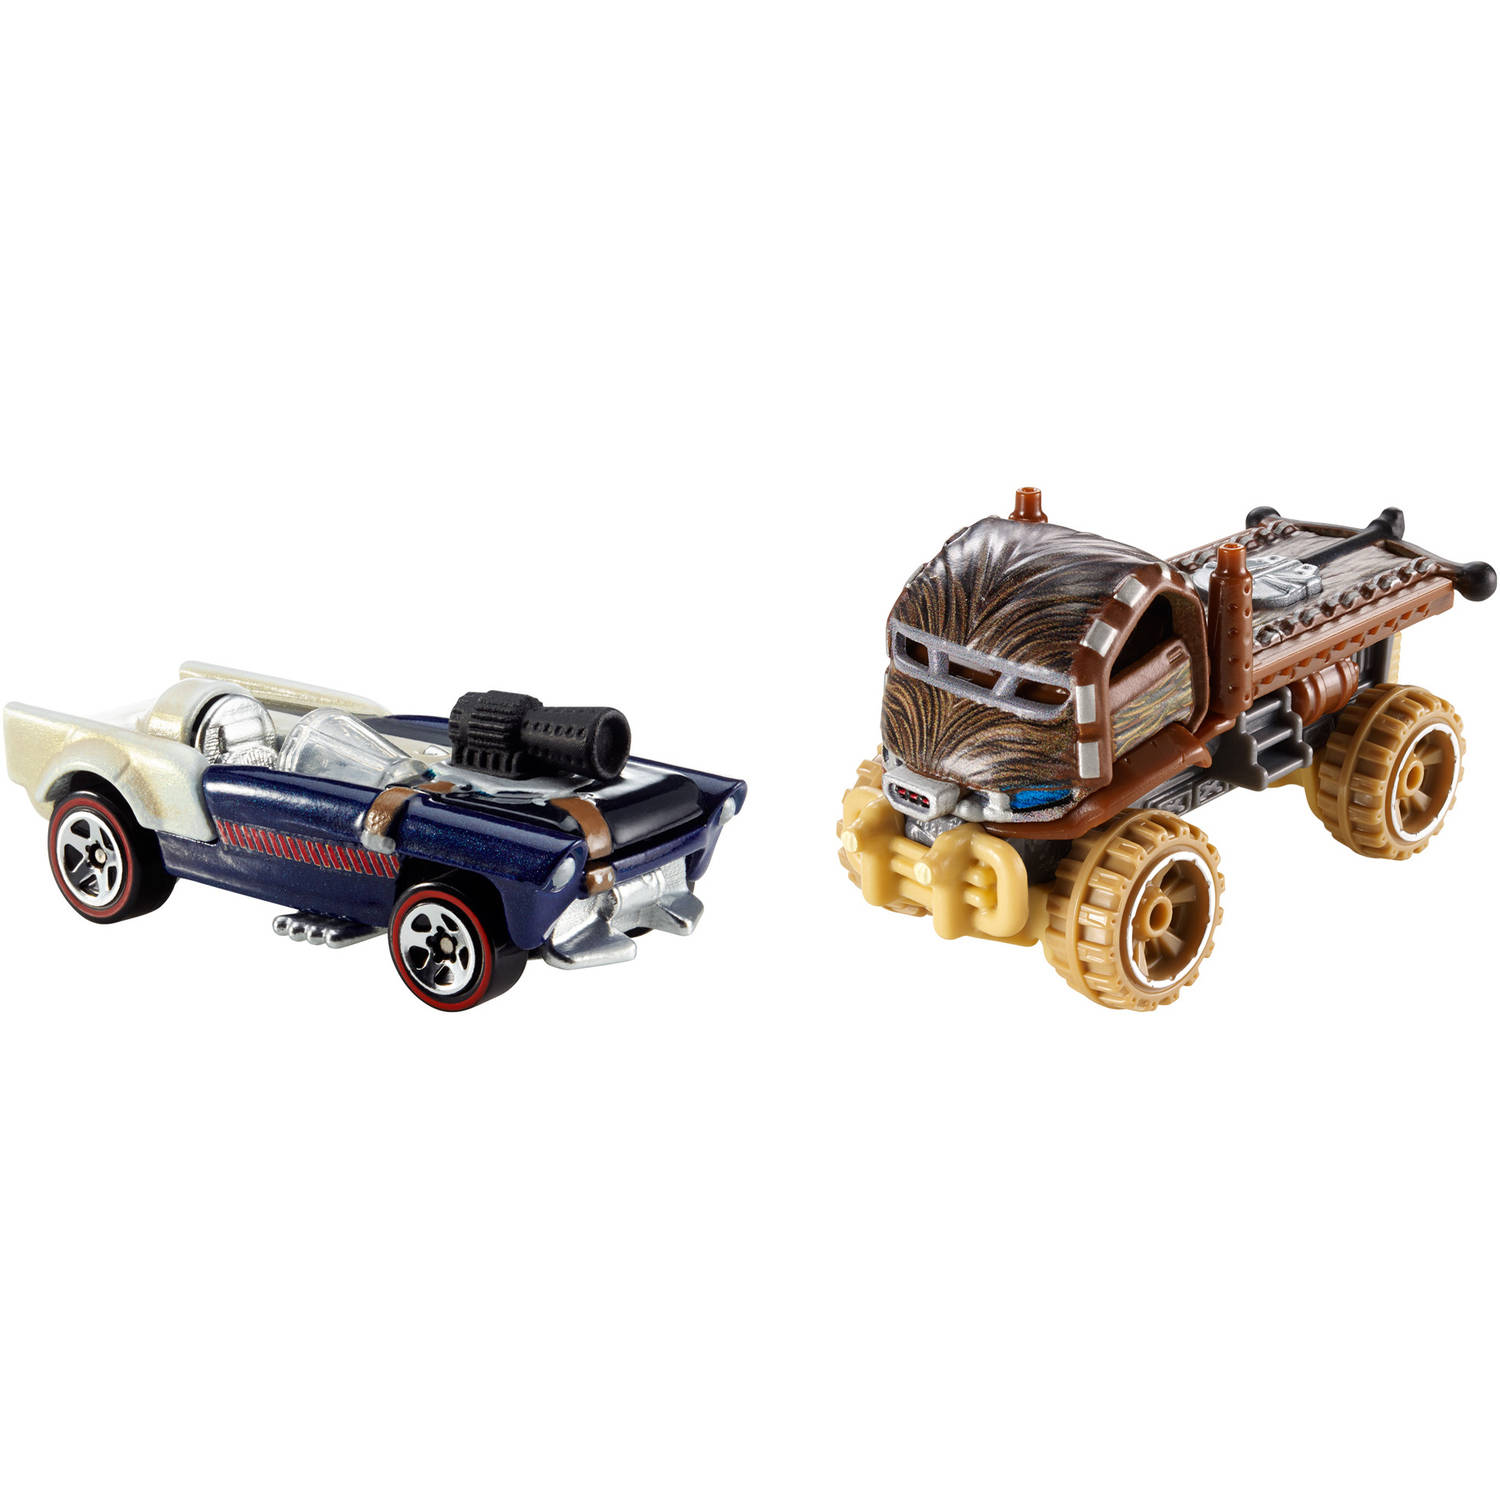 Hot Wheels Star Wars Character Car 2-Pack, Han Solo and Chewbacca by Mattel